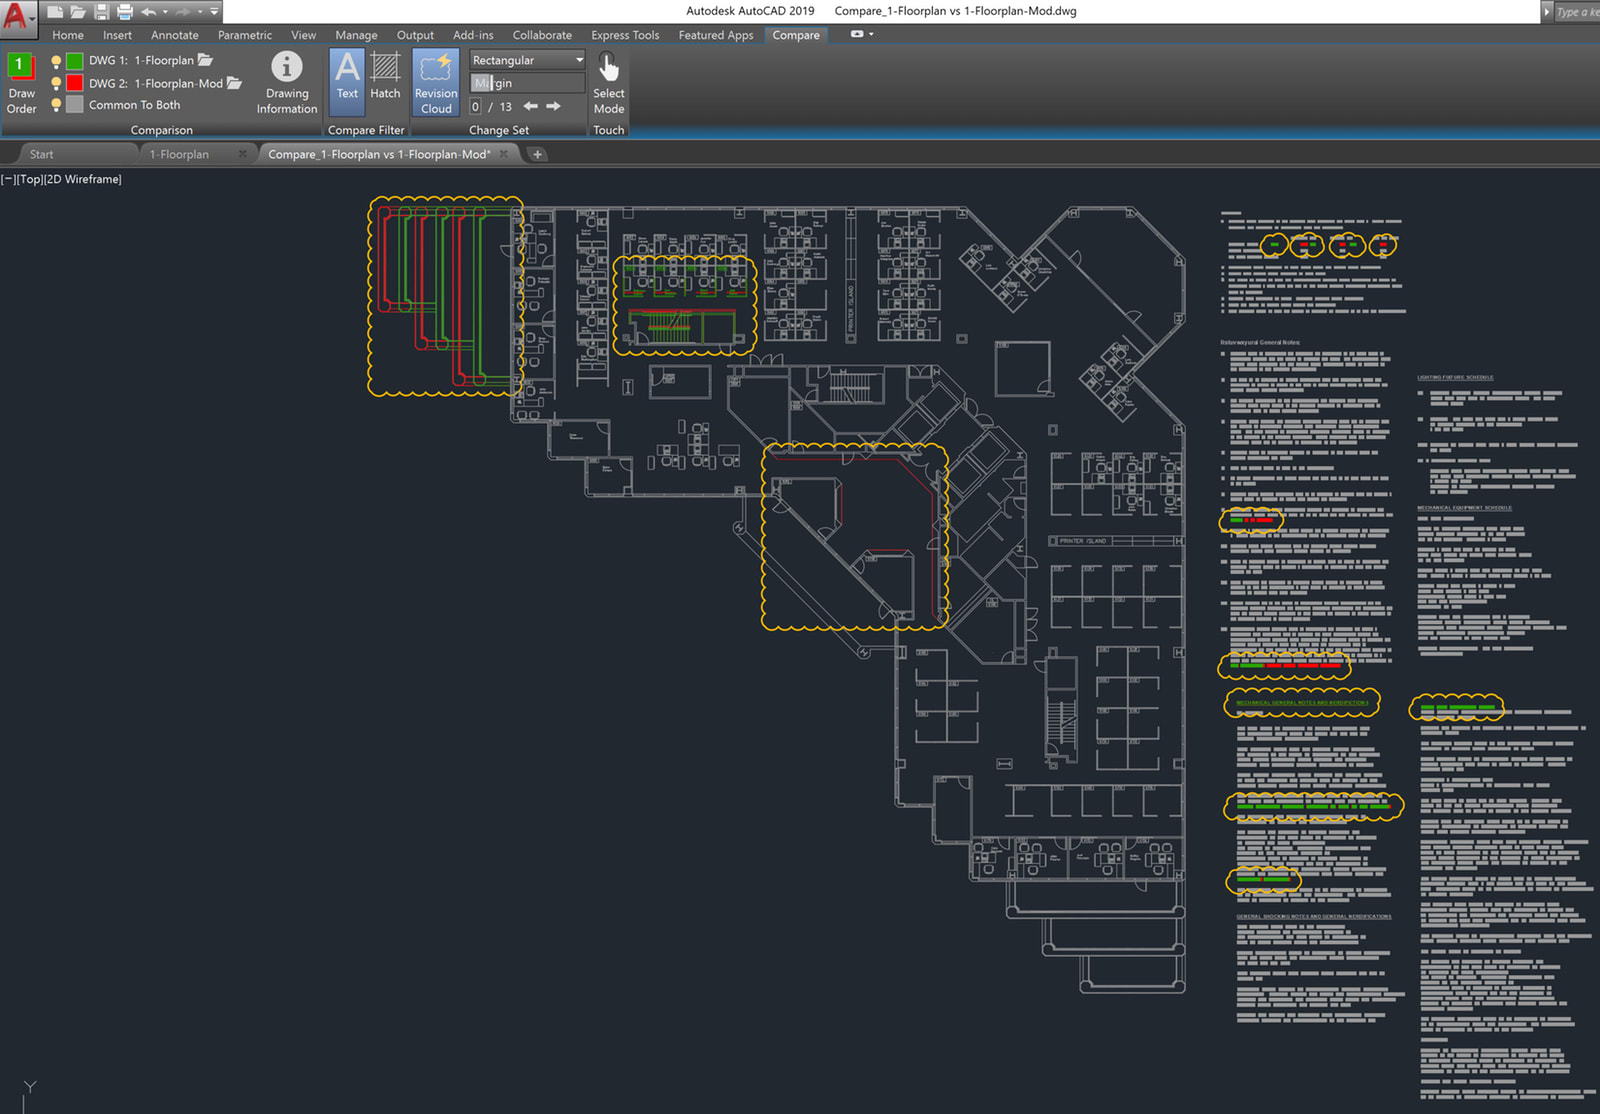 AutoCAD 2019: DWG Compare